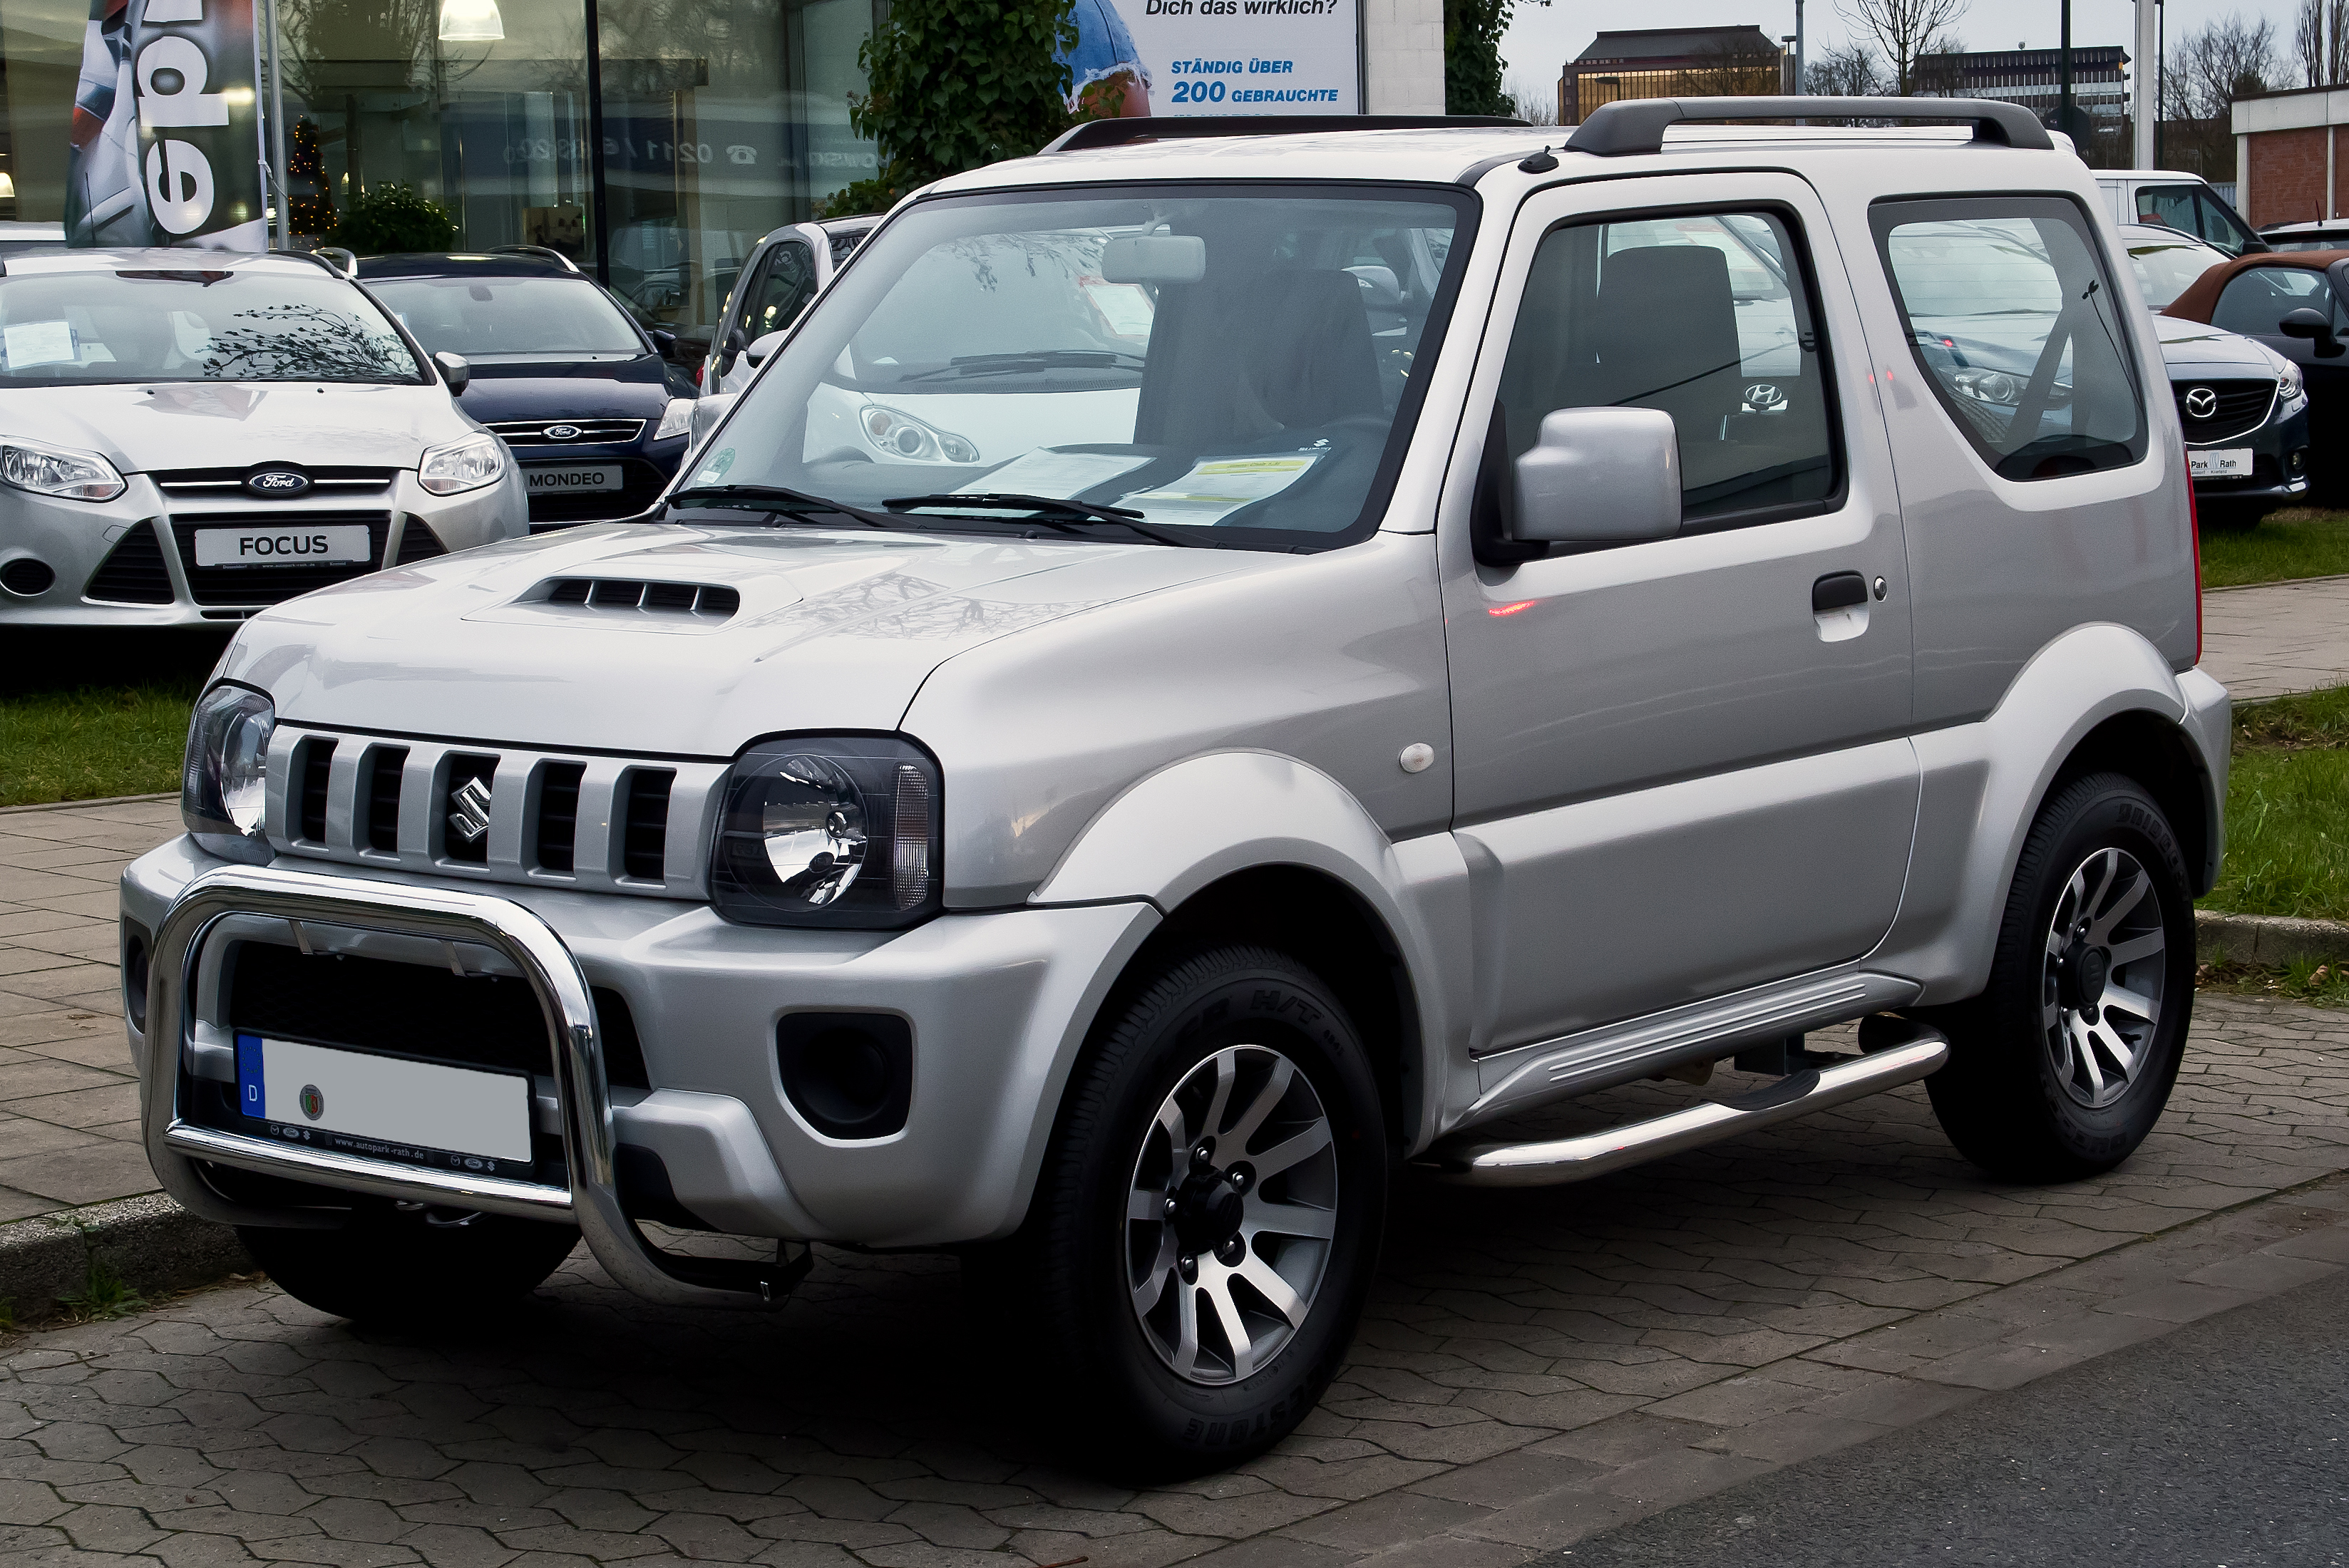 suzuki jimny wikiwand. Black Bedroom Furniture Sets. Home Design Ideas